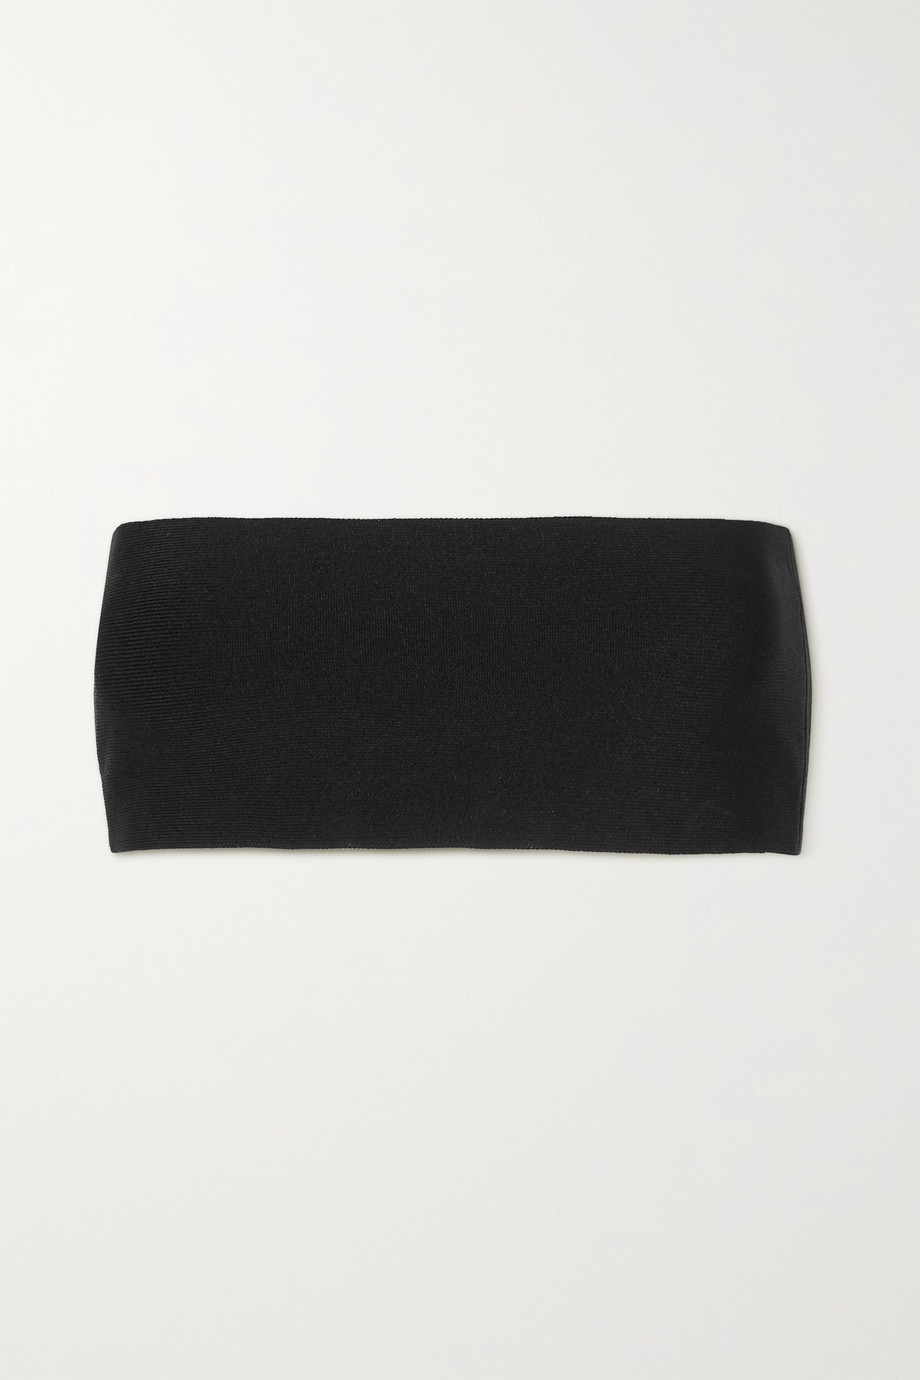 Stella McCartney Strapless knitted top